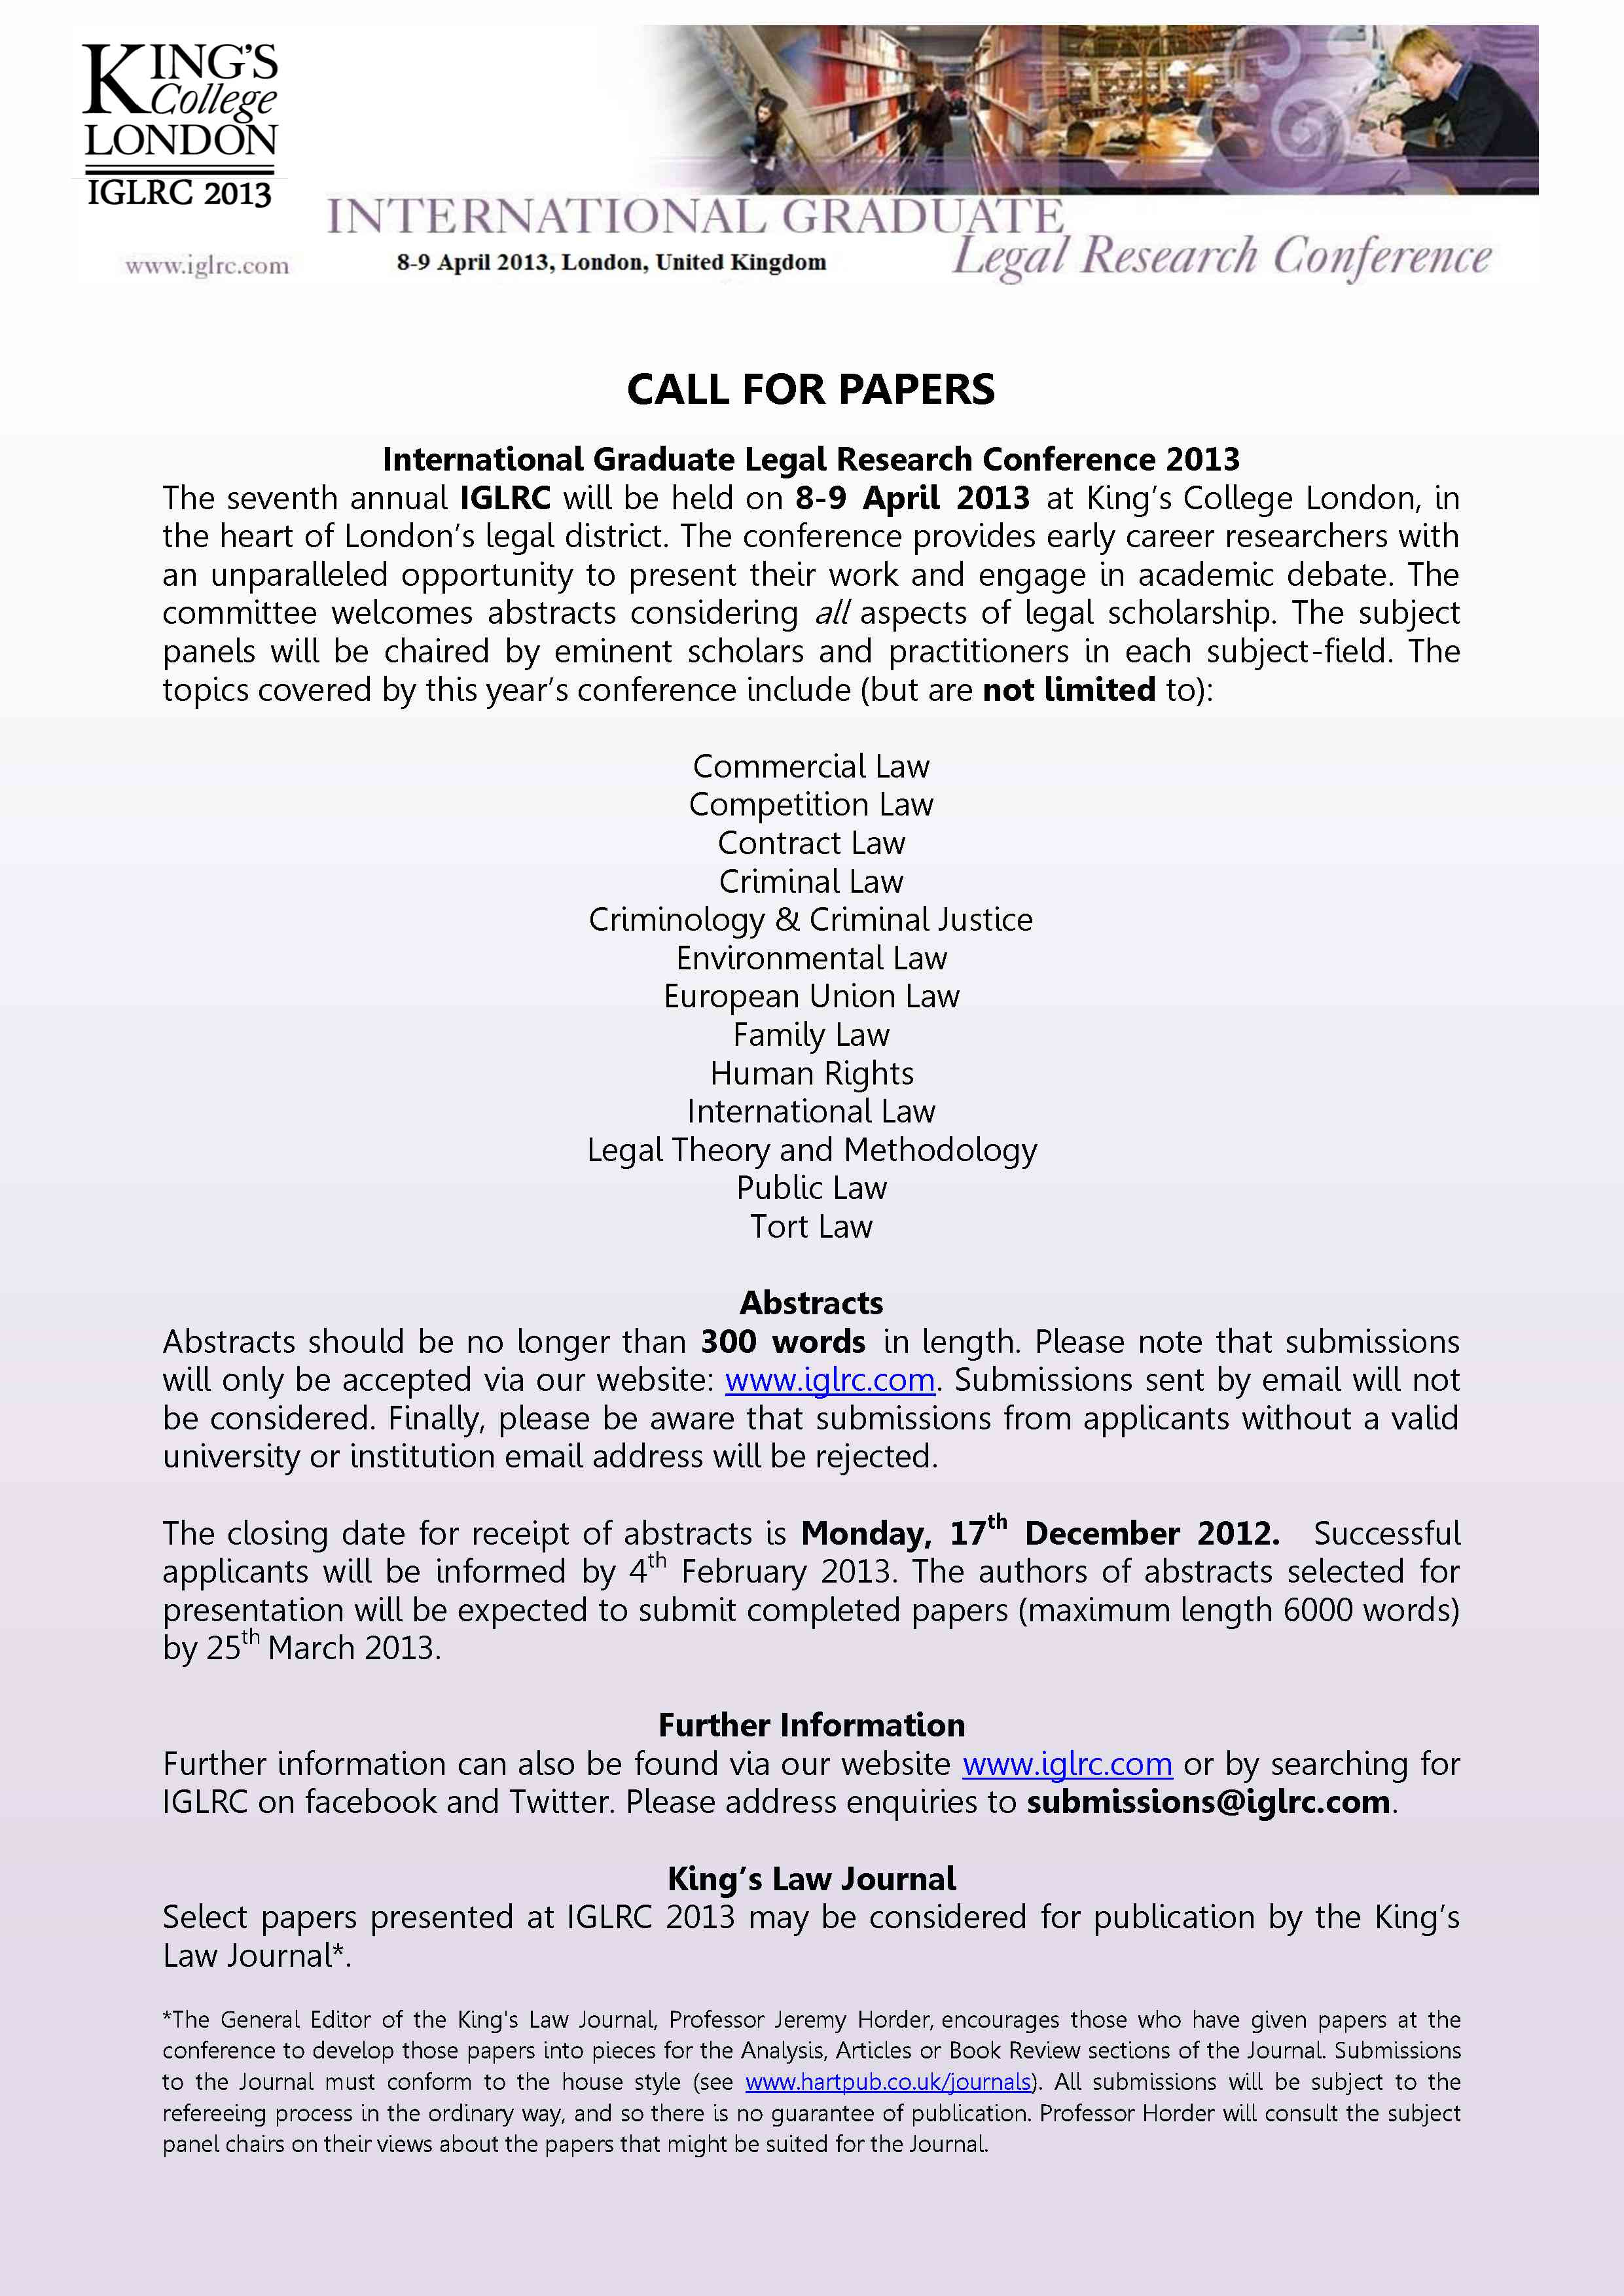 Journal of Legal Research (IJLR): Call for Editors and Papers